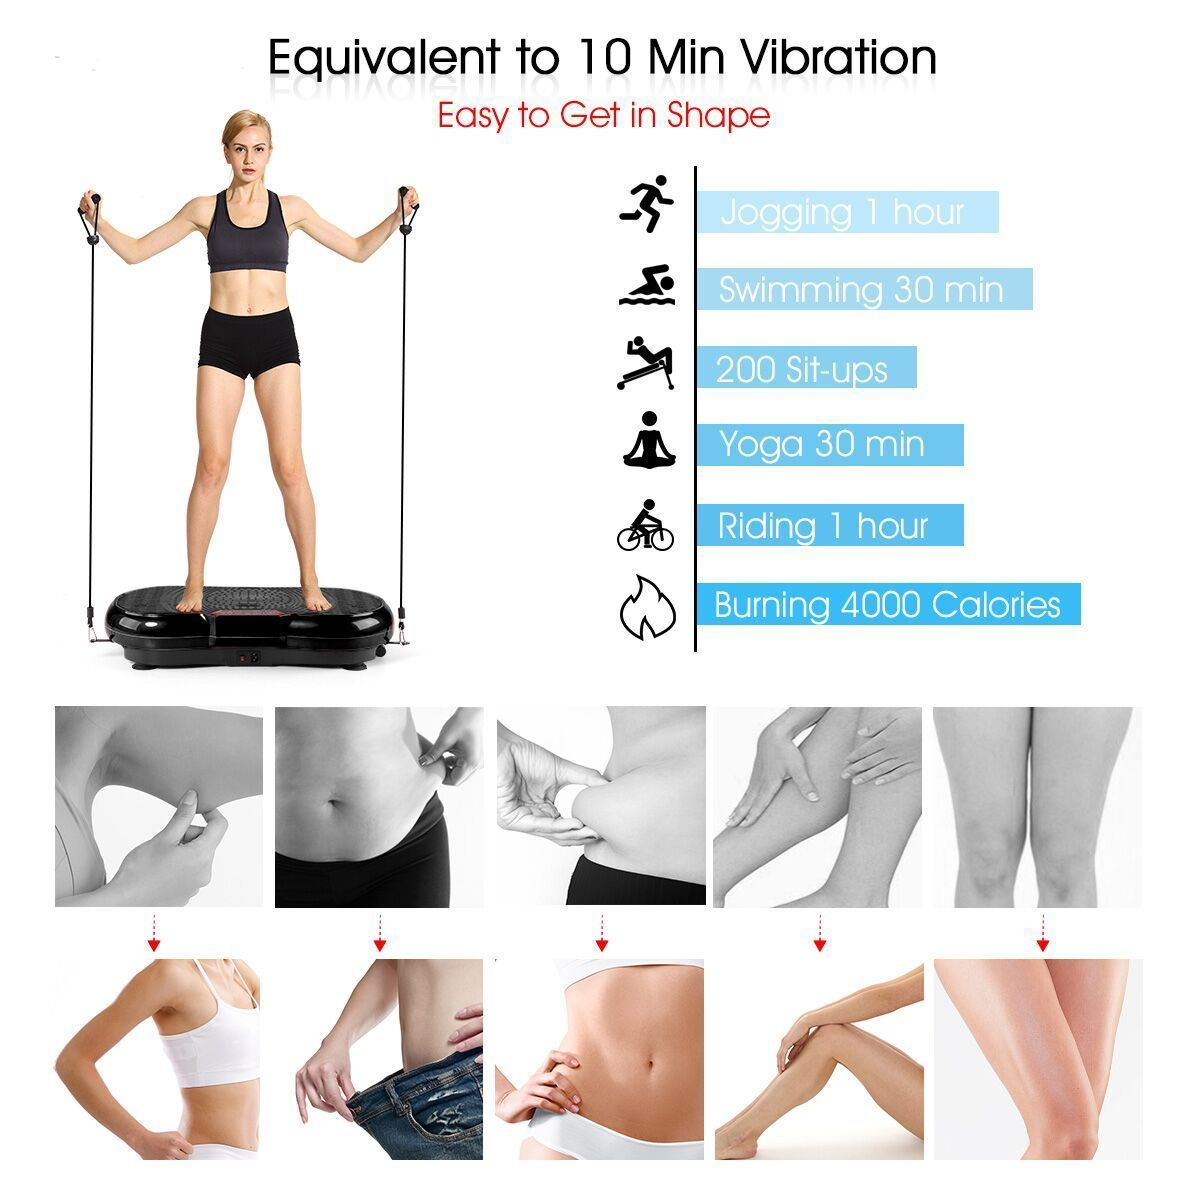 d6bb975c26c45 Genki Whole Body Vibration Plate Slim Exercise Fitness Machine Shaper  Massager  81.49 End Date  2019